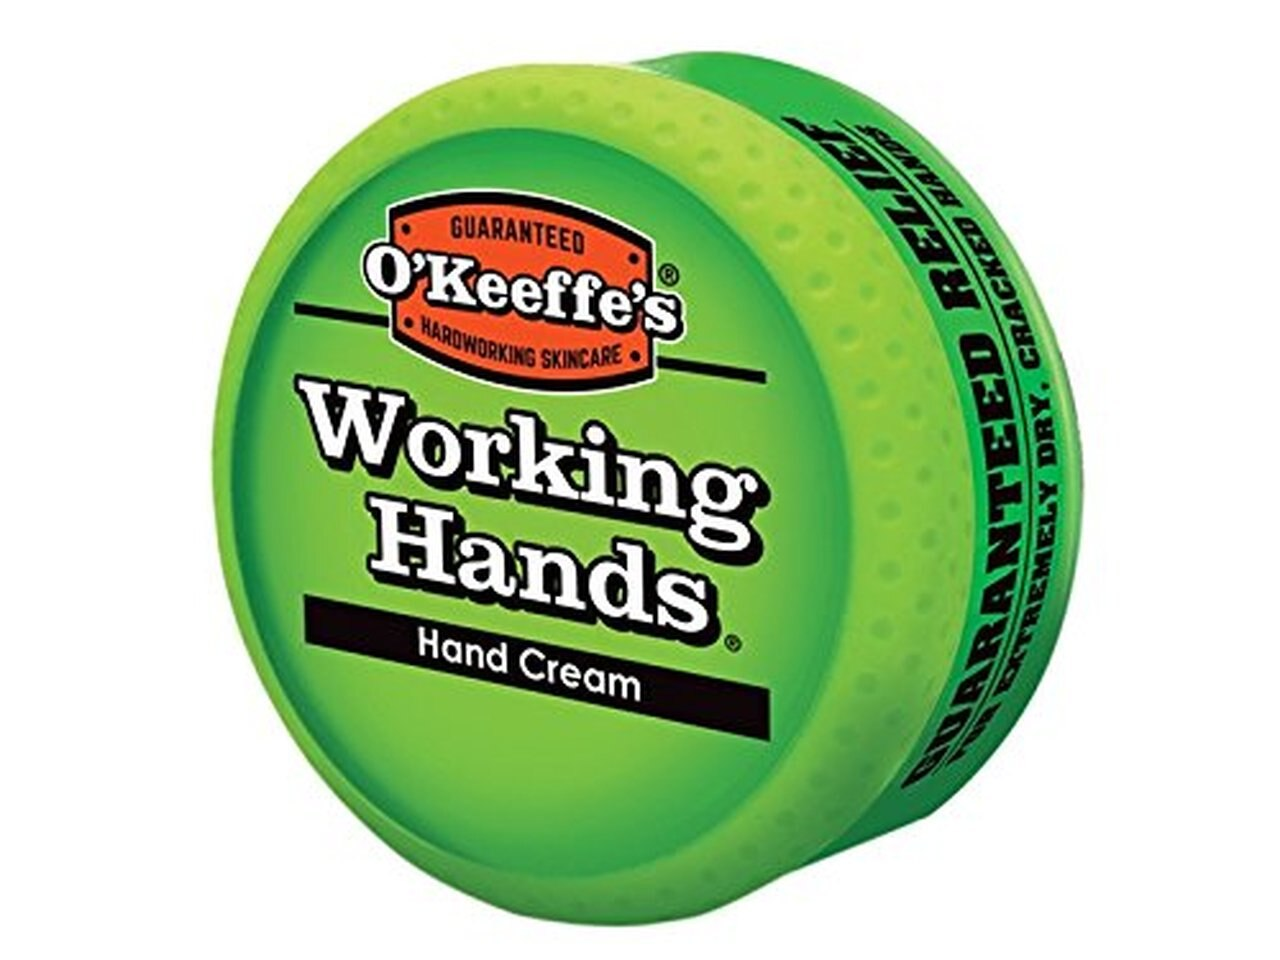 O'KEEFFES WORKING HANDS HAND CREAM TUBE 85G